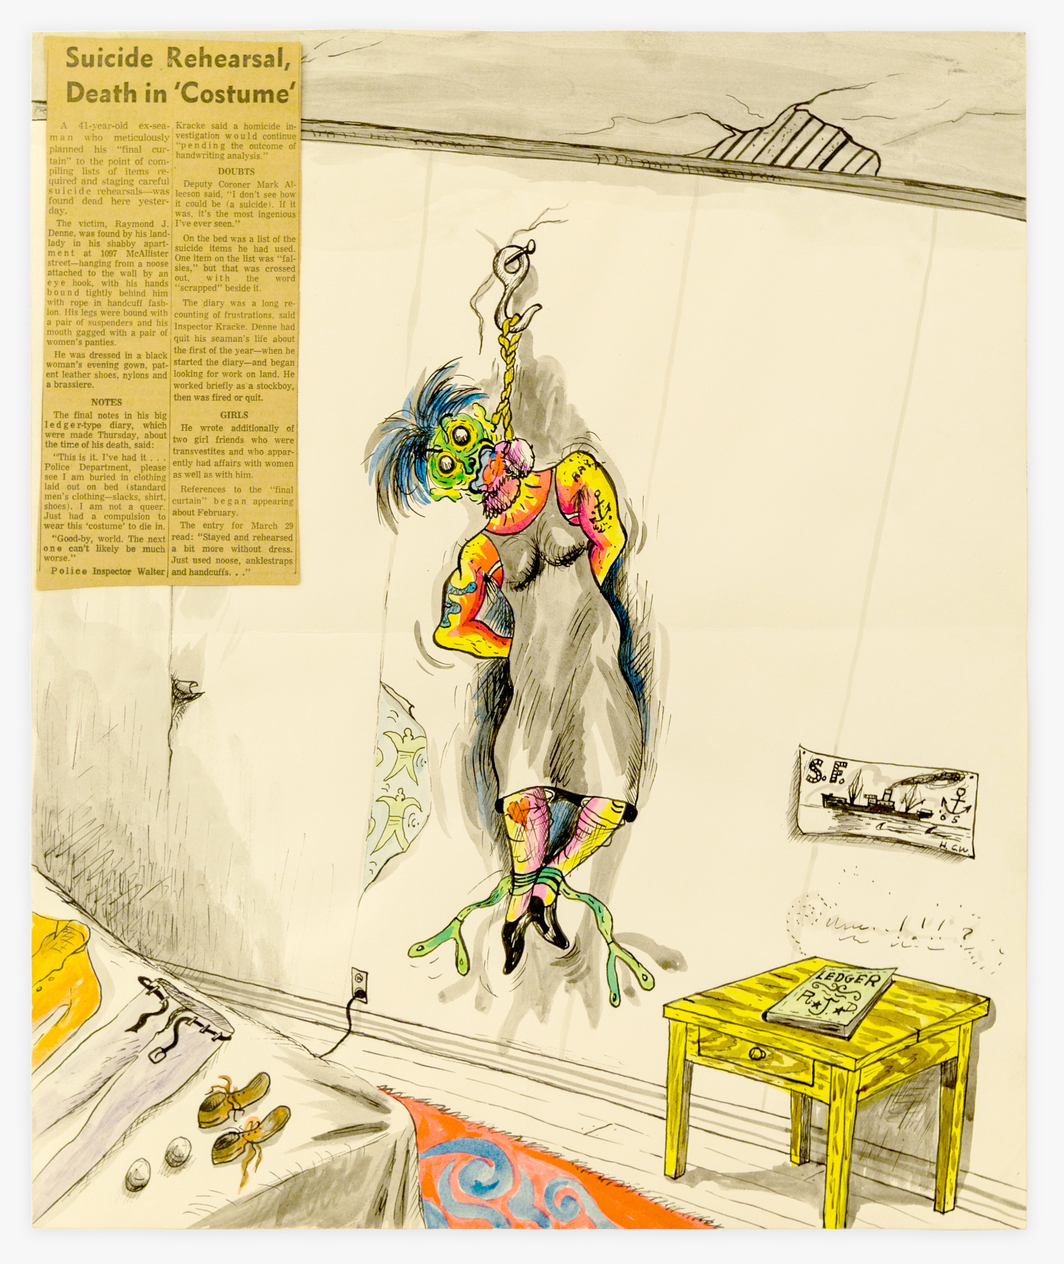 "H.C. Westermann, Suicide Rehearsal, 1965, ink, watercolor, paper, newsprint, 17 x 14""."